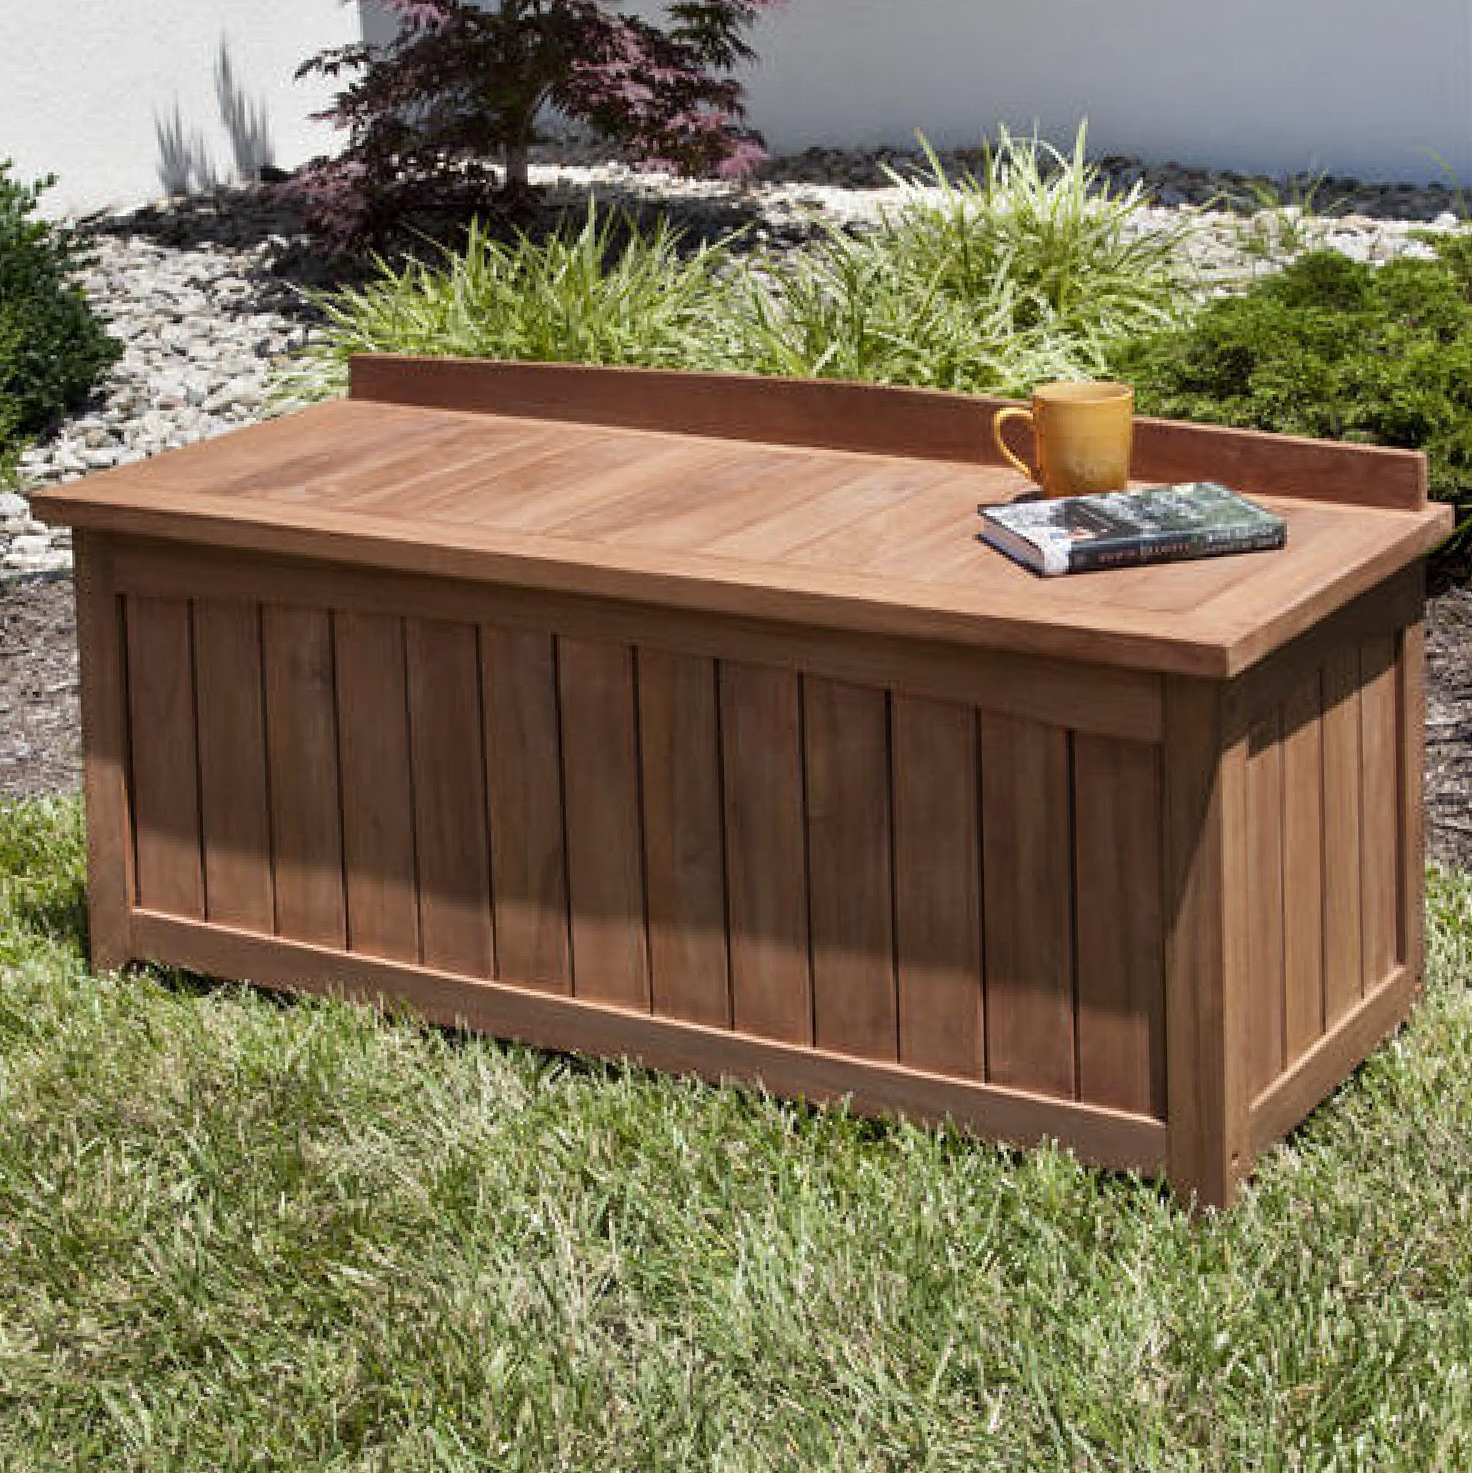 Outdoor Storage Bench Home Depot | Rubbermaid Storage Bench | Lowes Storage Boxes